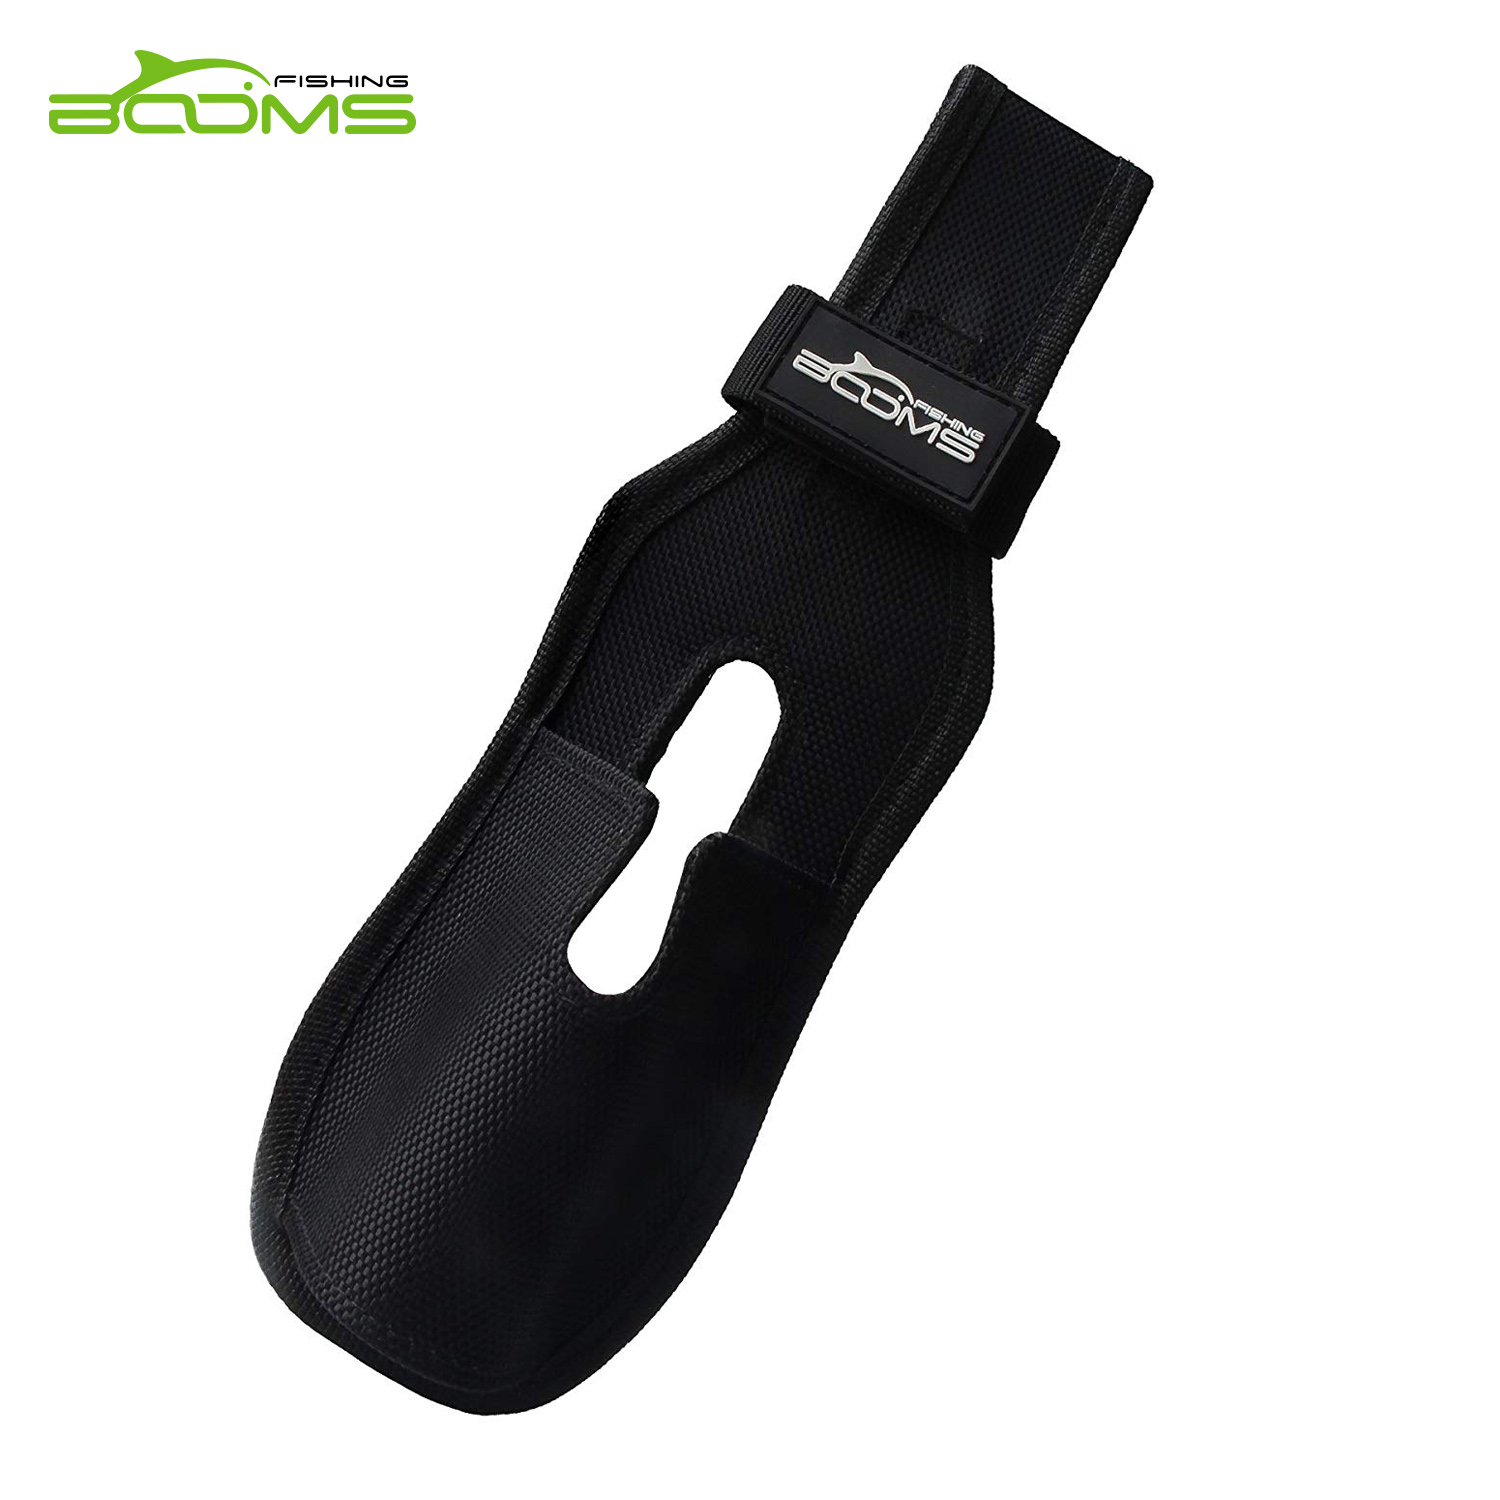 Booms Fishing P04 Outdoor Rod Holder Fishing Pole Rack Holders Nylon Sheath Tackle Tools Accessories